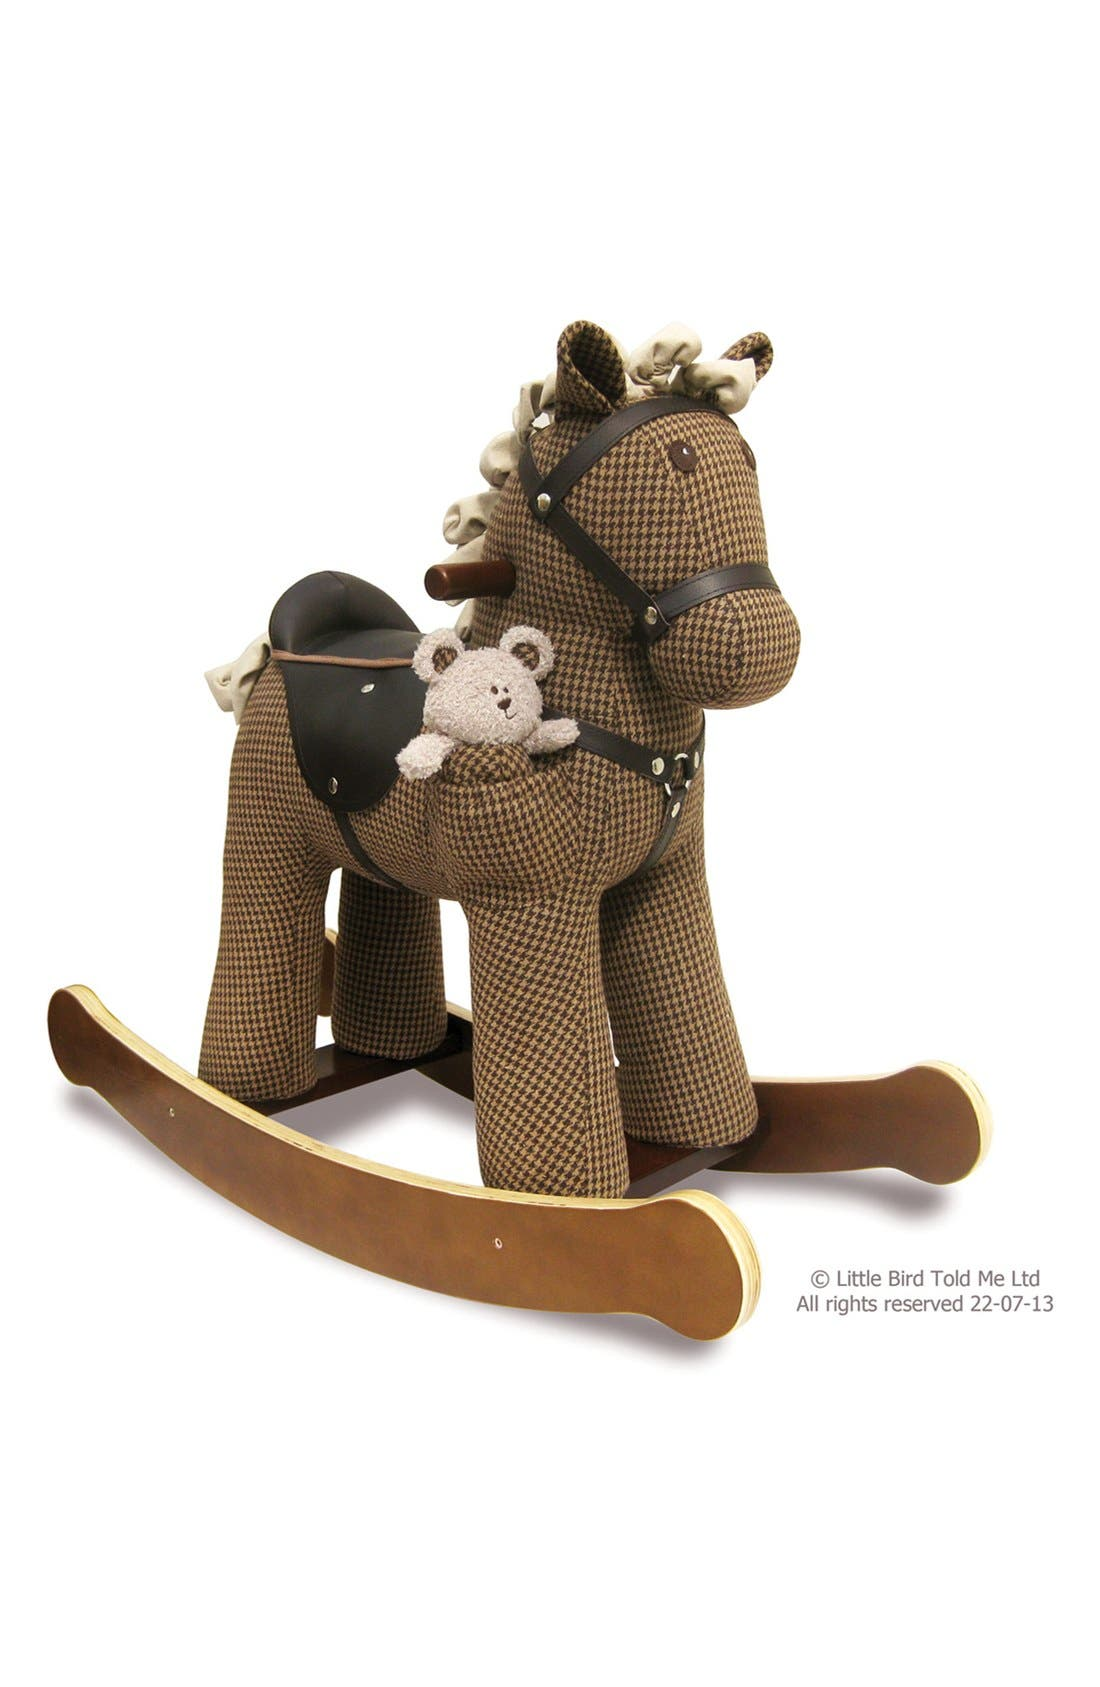 Alternate Image 1 Selected - Little Bird Told Me Rocking Horse & Stuffed Animal